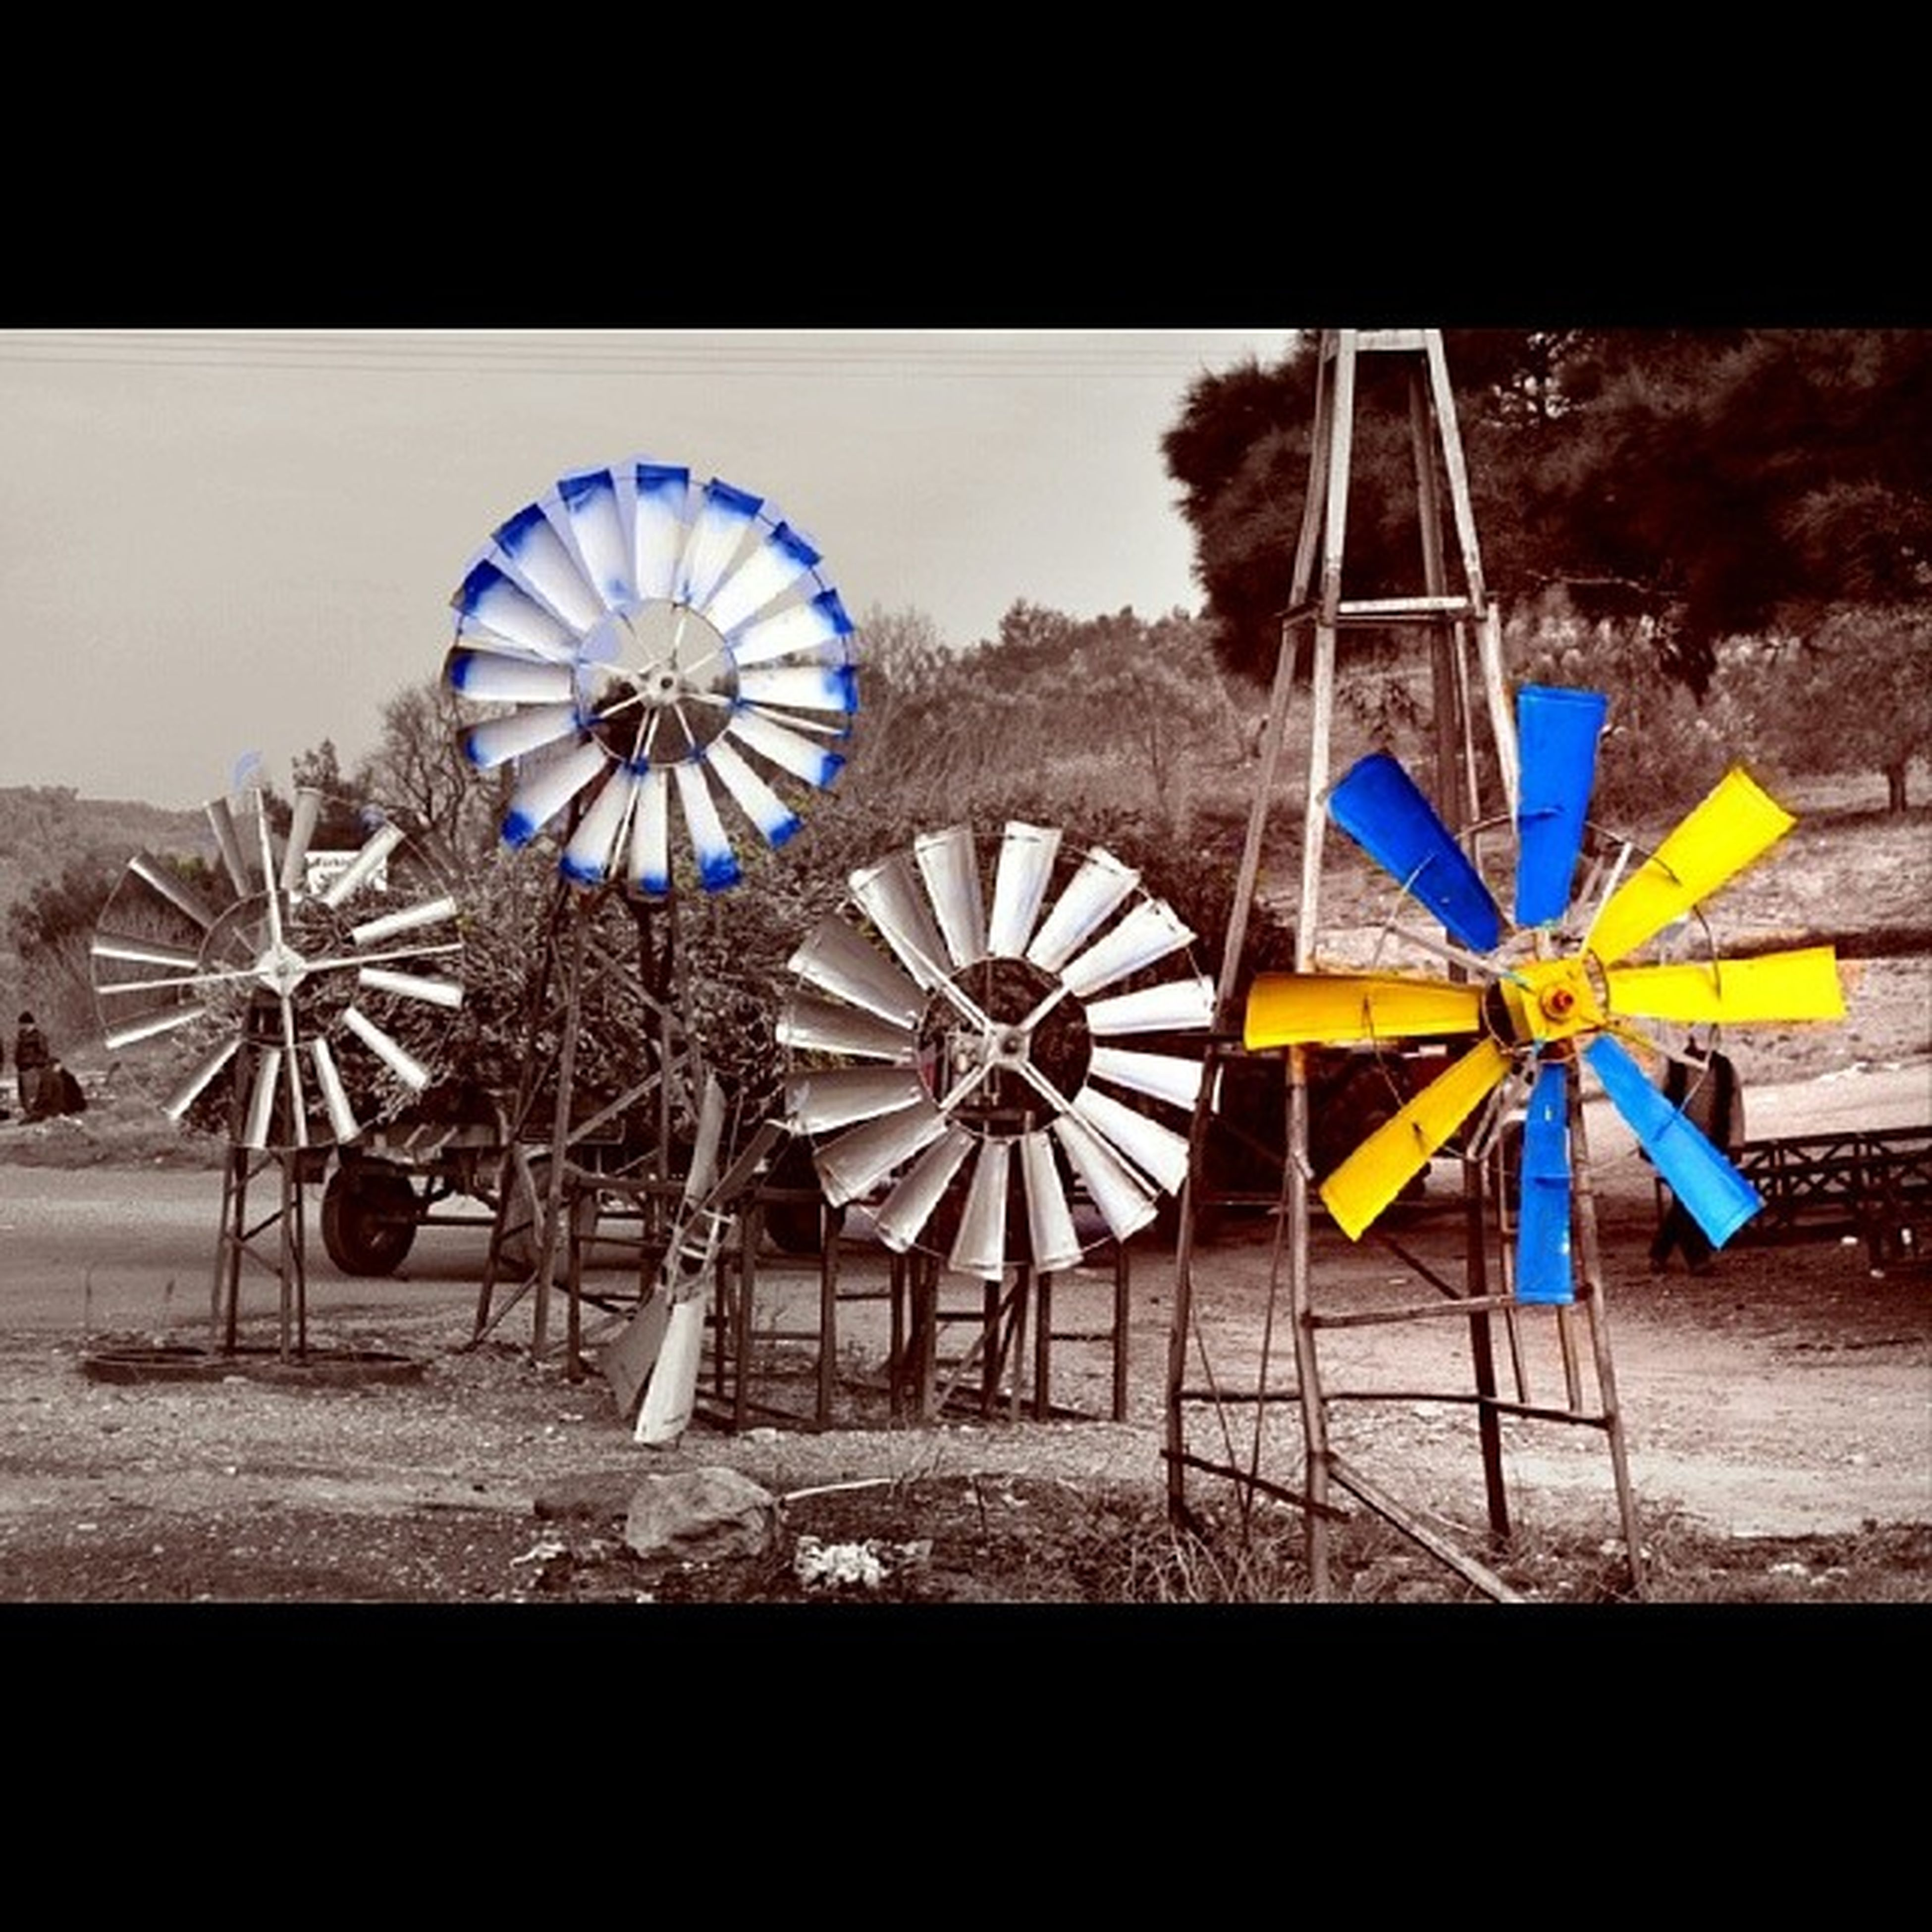 no people, day, wall - building feature, blue, auto post production filter, abandoned, yellow, outdoors, absence, creativity, art and craft, multi colored, art, sunlight, built structure, wall, metal, transfer print, wheel